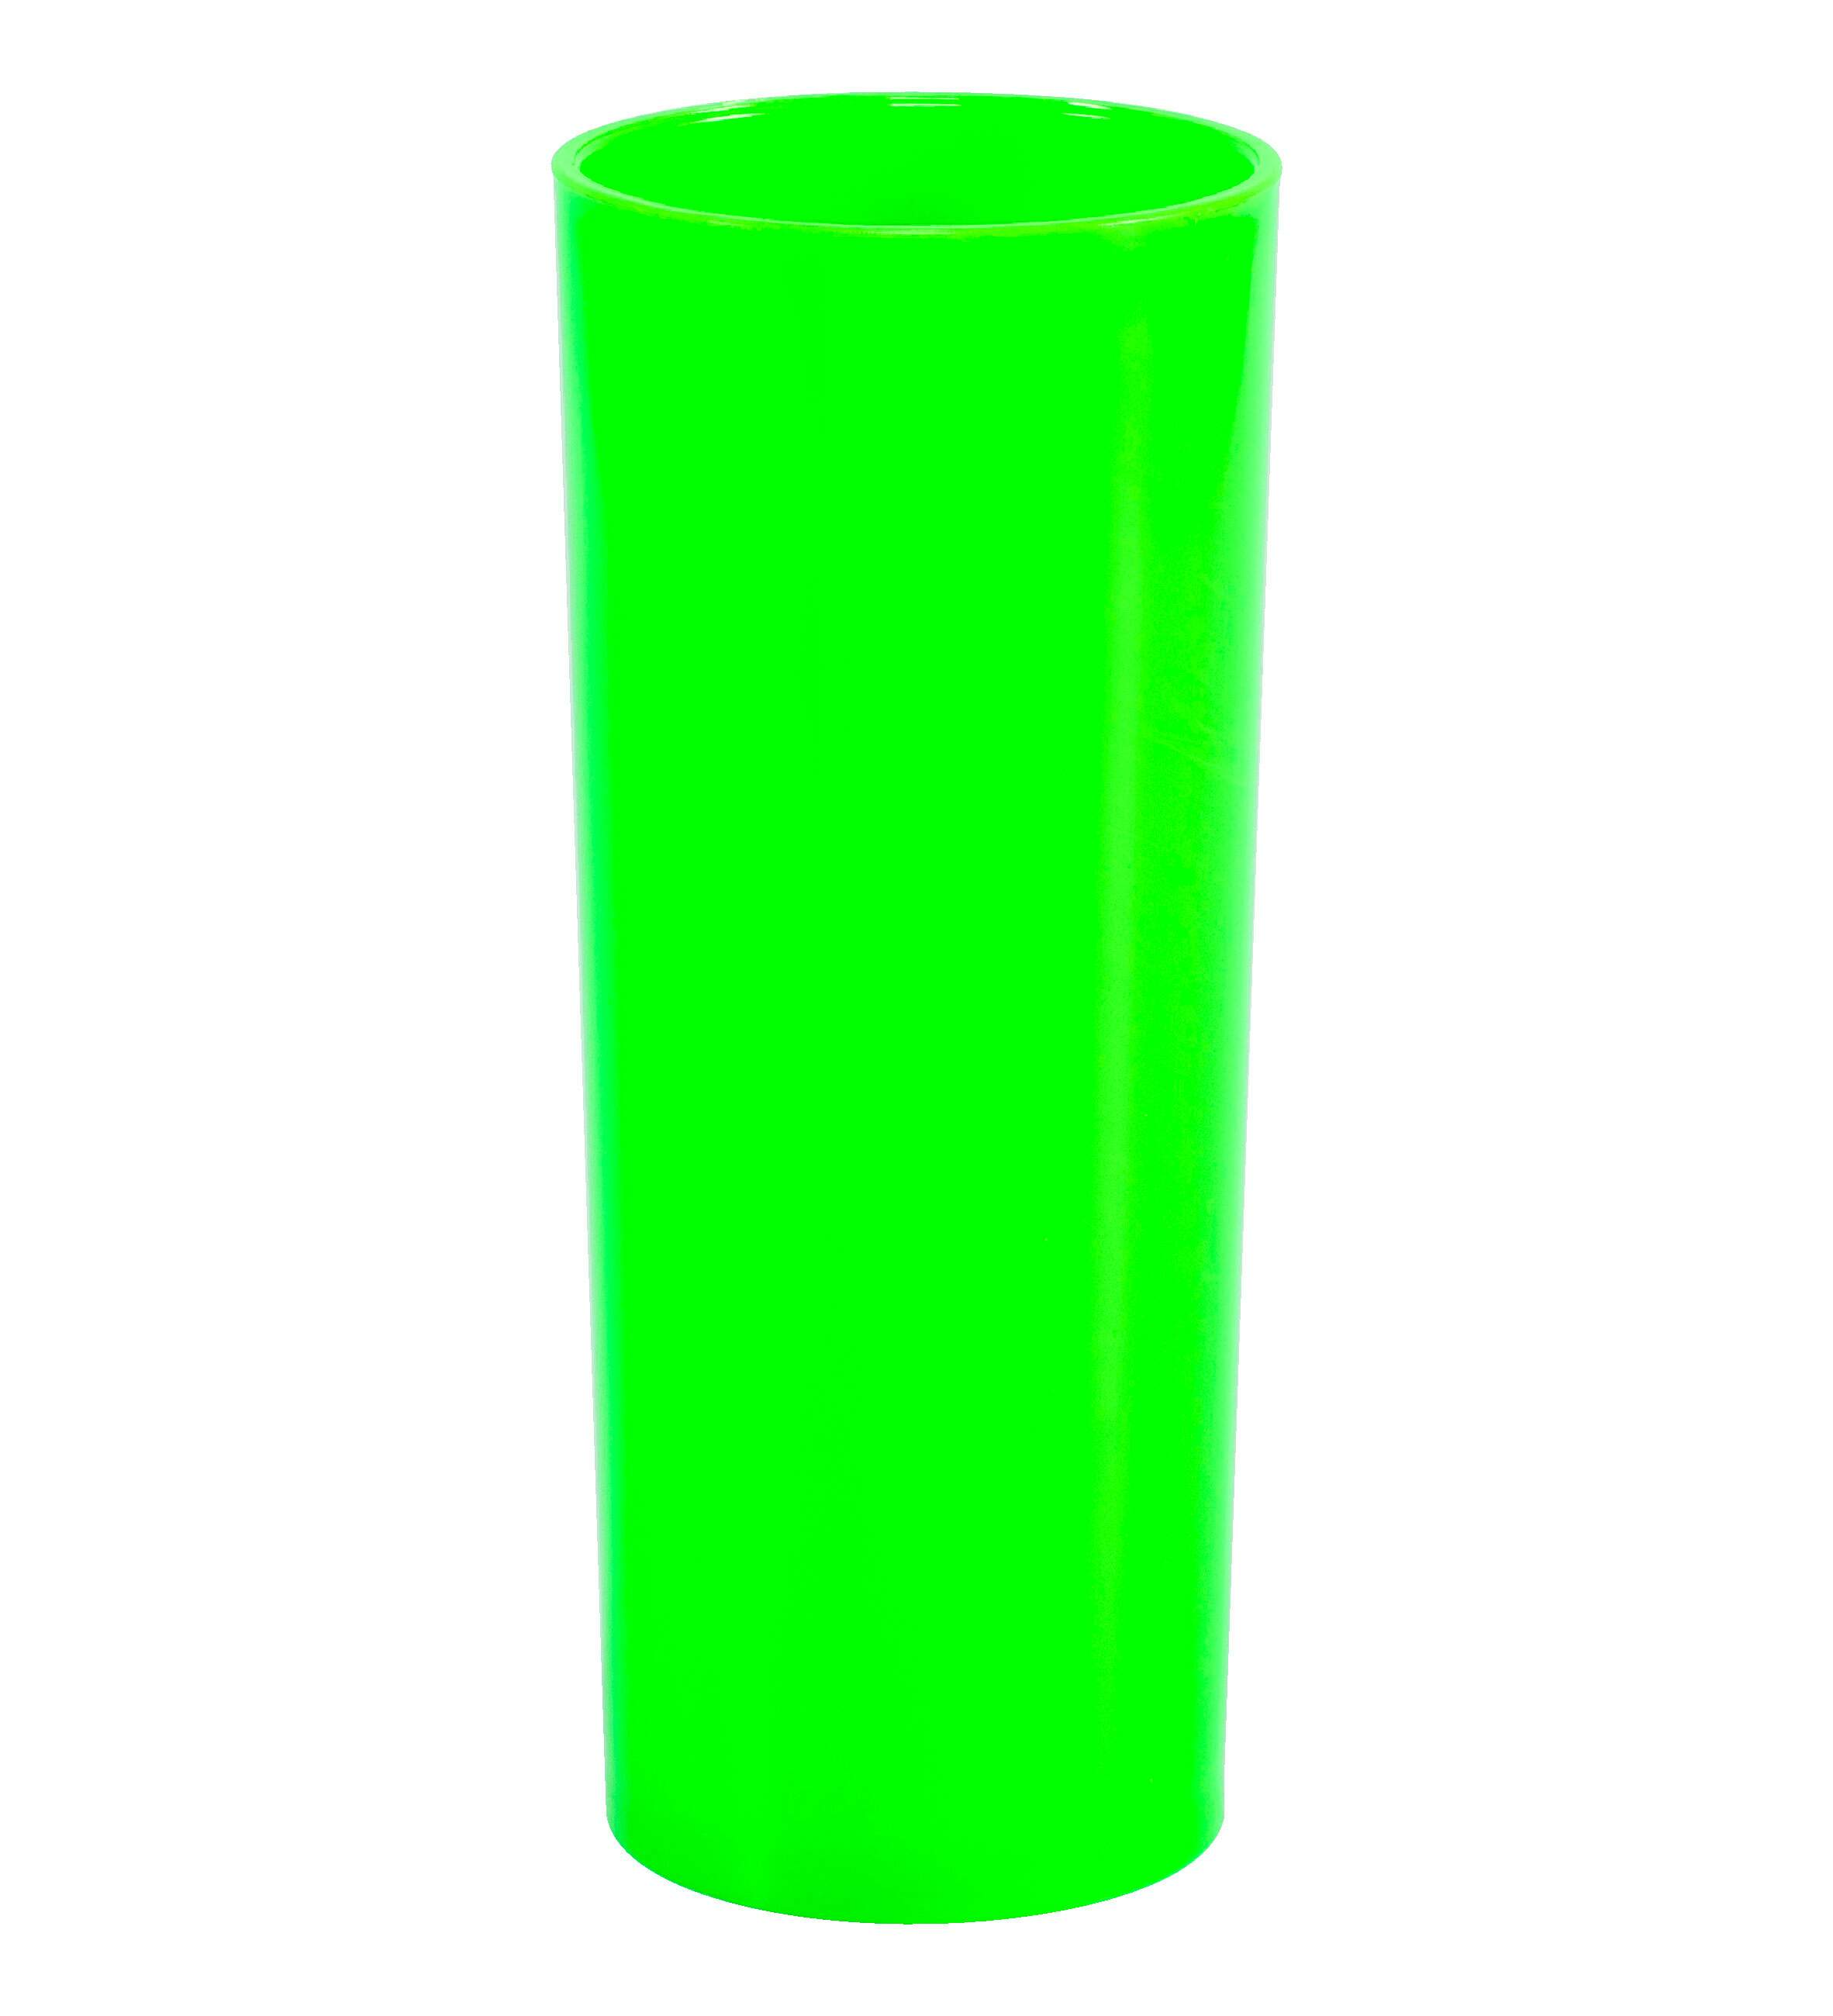 Long Drink Verde Neon Leitoso para Transfer - 350 ml